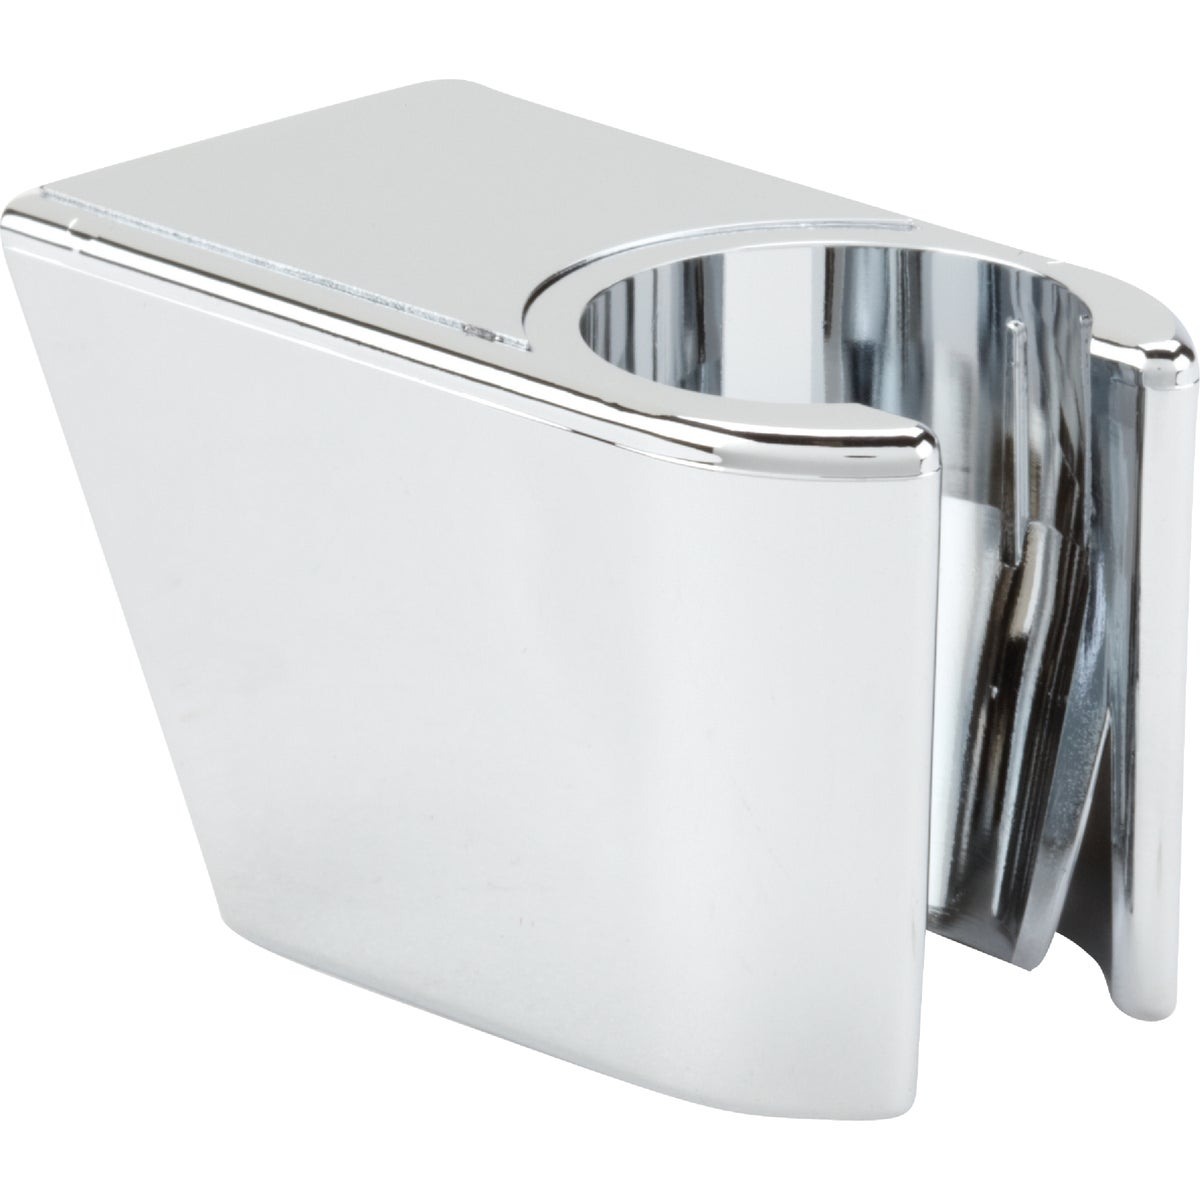 CHROME WALL MOUNT - 483516 by Do it Best